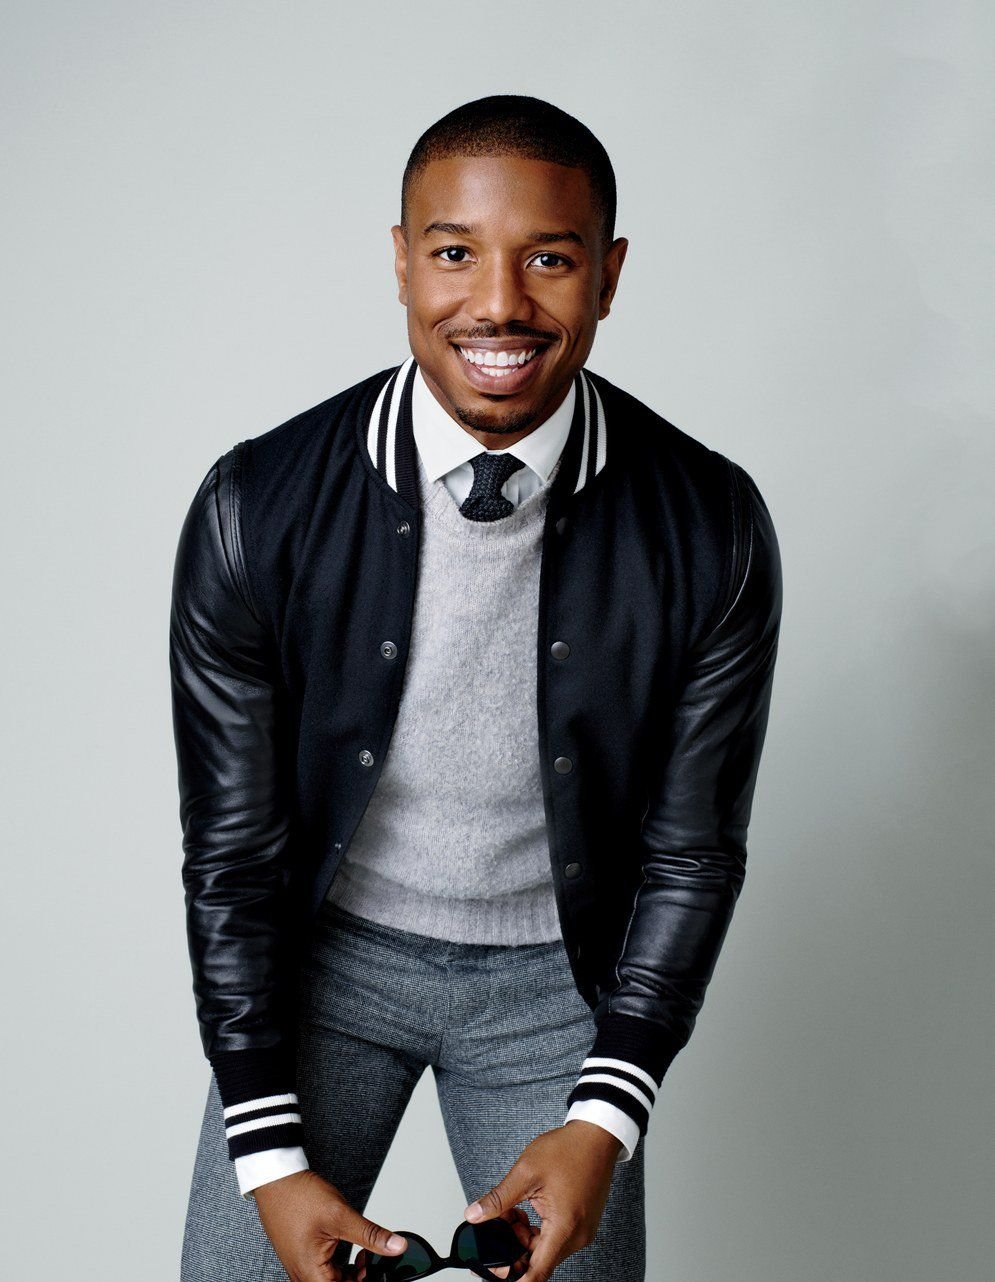 Gq Magazine On Twitter High Fashion Men Varsity Jacket Outfit What To Wear Today [ 1282 x 995 Pixel ]